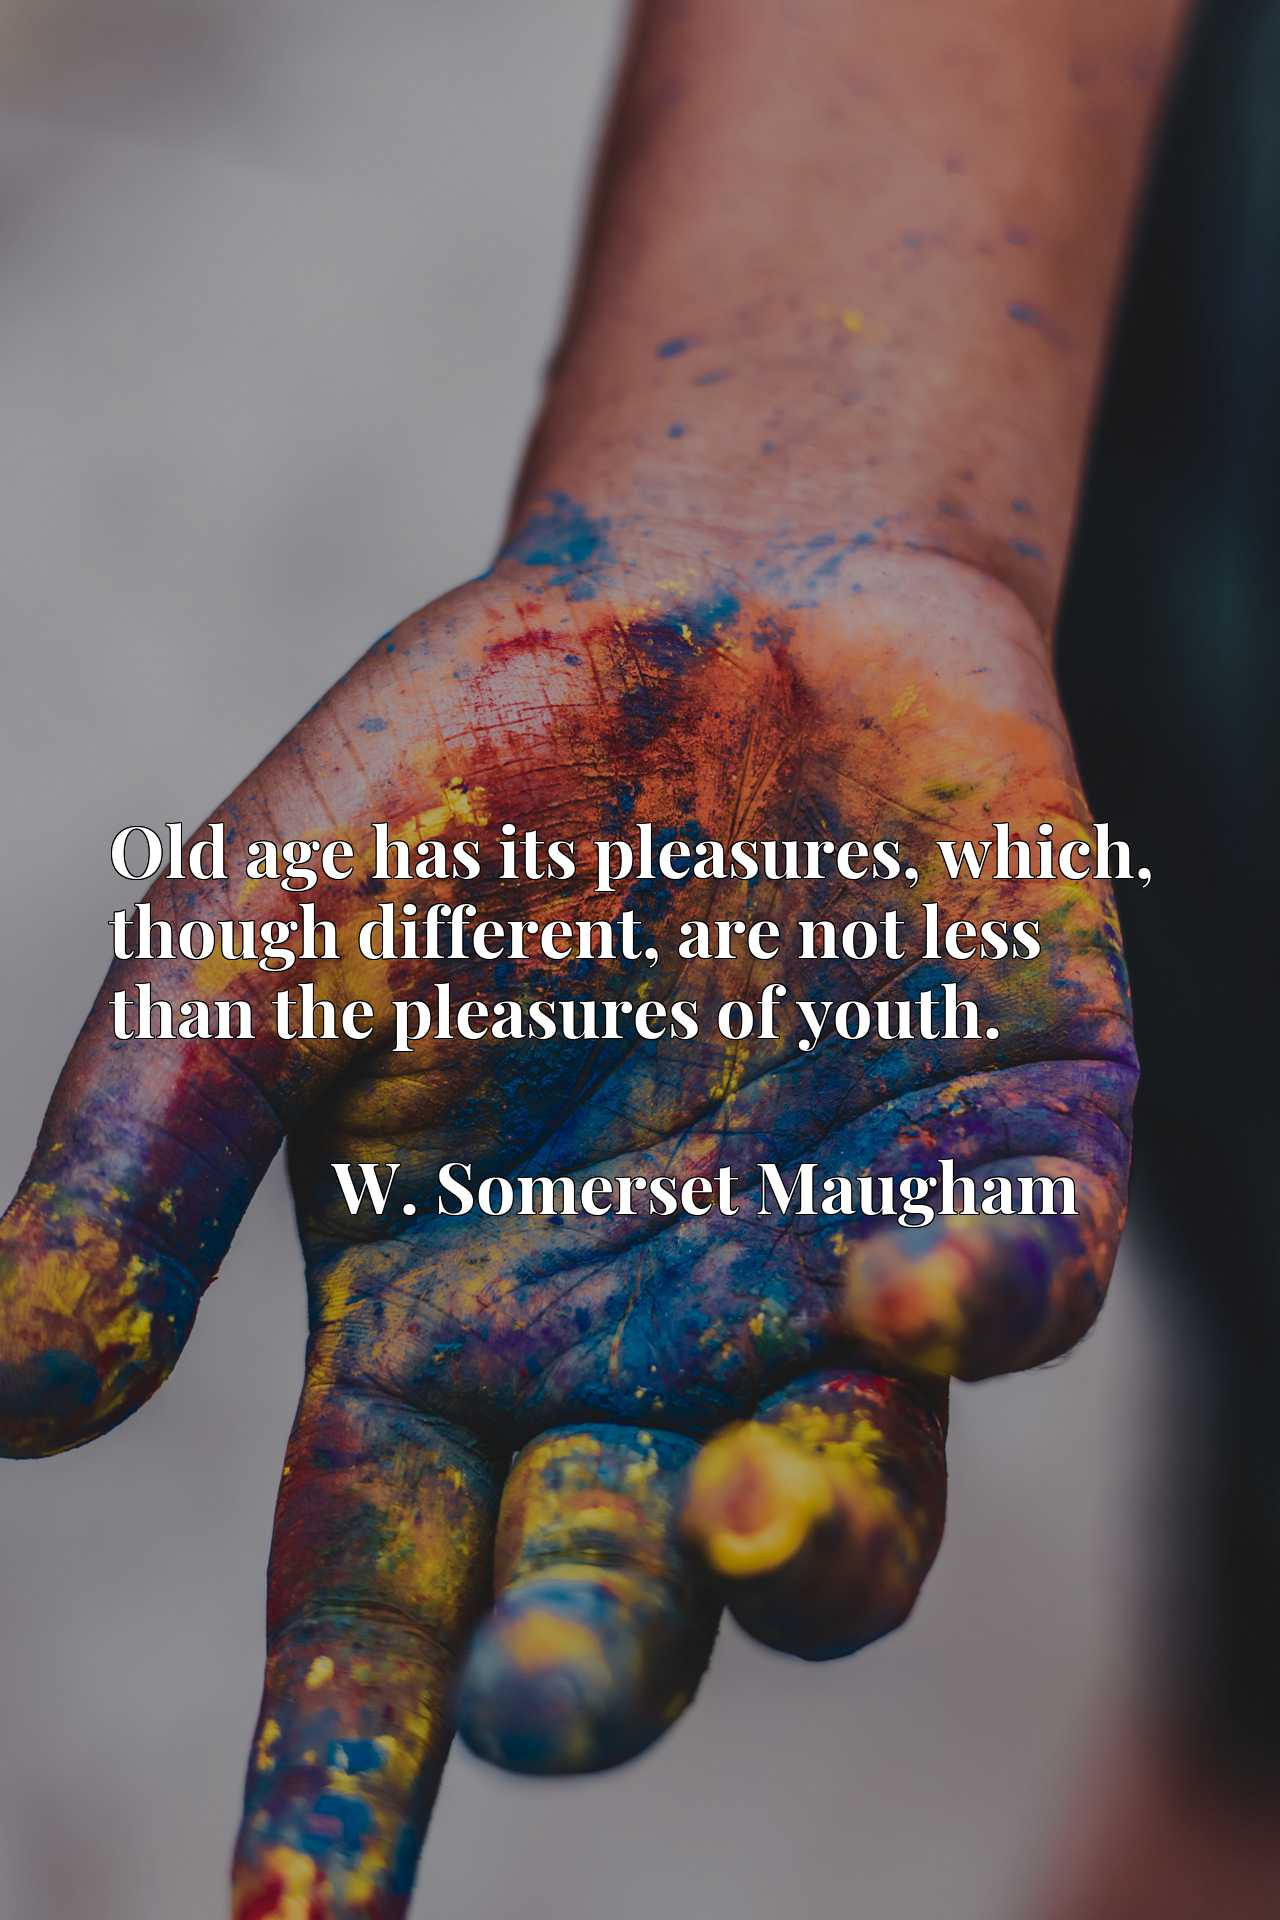 Old age has its pleasures, which, though different, are not less than the pleasures of youth.